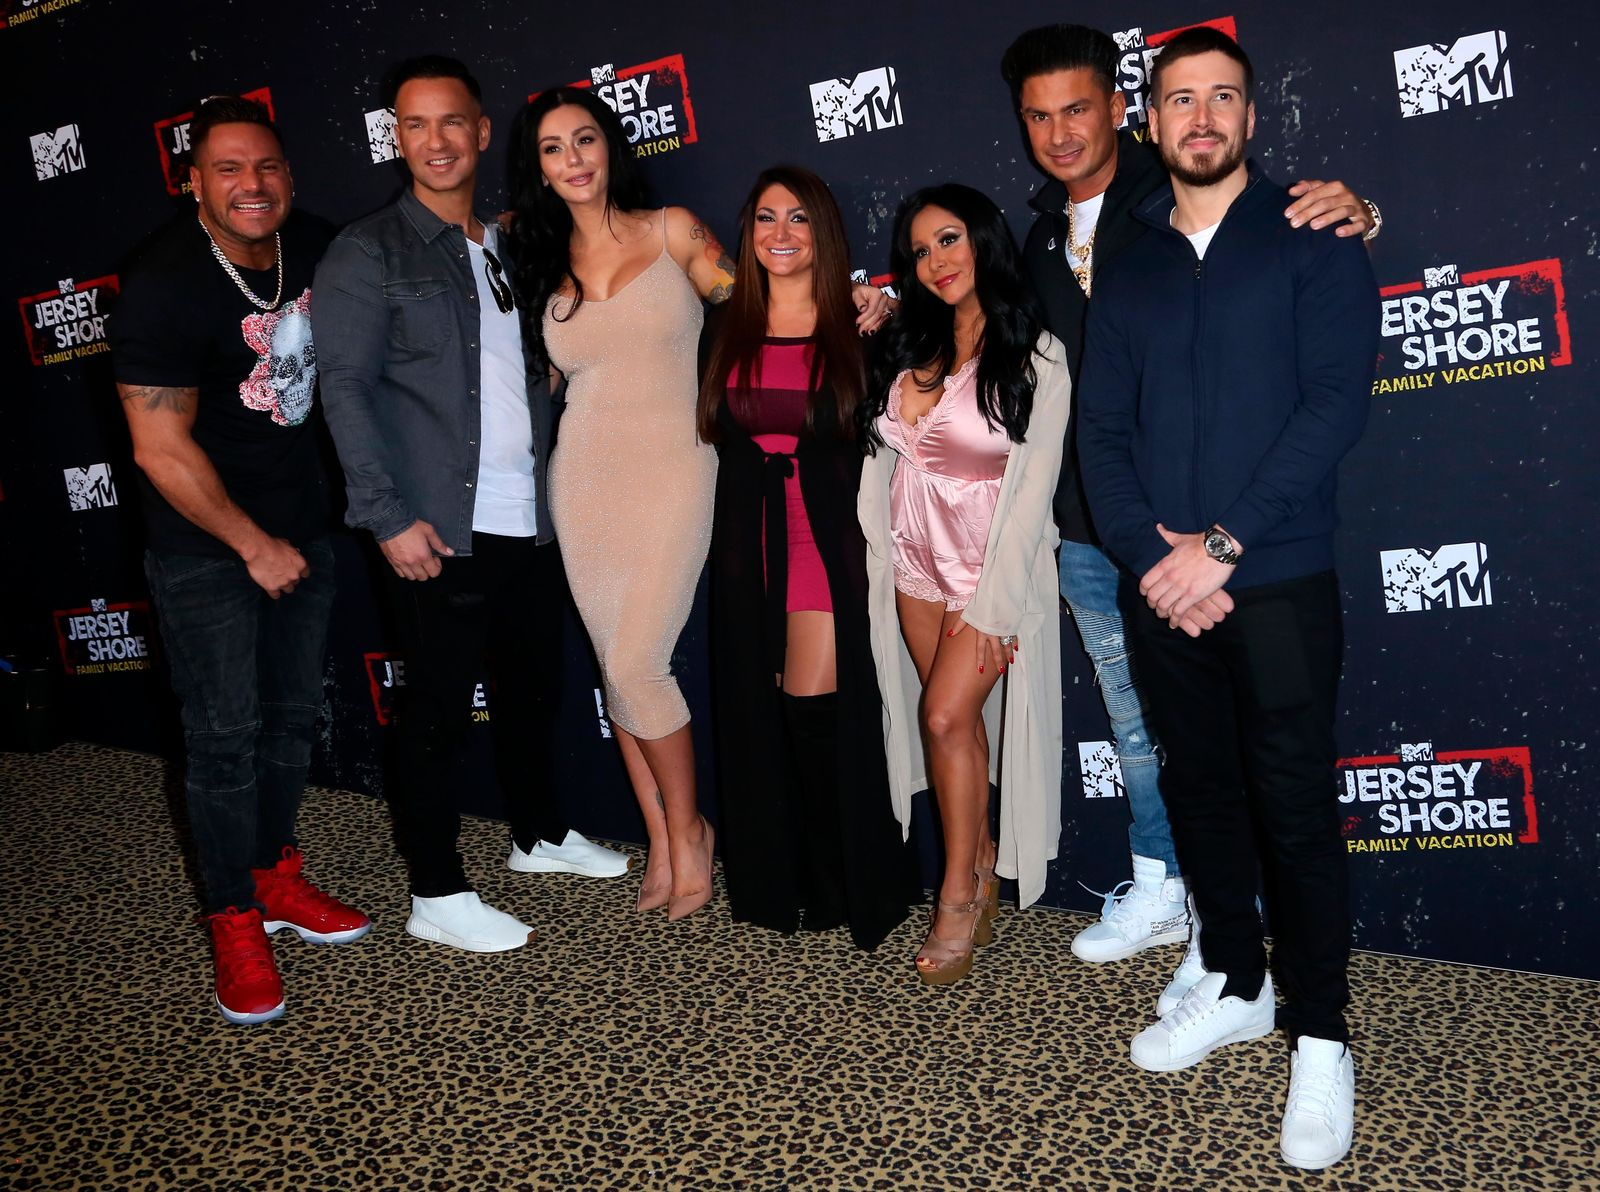 "Ronnie Ortiz-Magro, from left, Mike 'The Situation' Sorrentino, Jenni 'Jwoww' Farley, Deena Nicole Cortese, Vinny Guadagnino, Paul 'Pauly D' DelVecchio and Nicole Polizzi arrive at the LA Premiere of ""Jersey Shore Family Vacation"" on Thursday, March 29, in Los Angeles. (Photo by Willy Sanjuan/Invision/AP)"